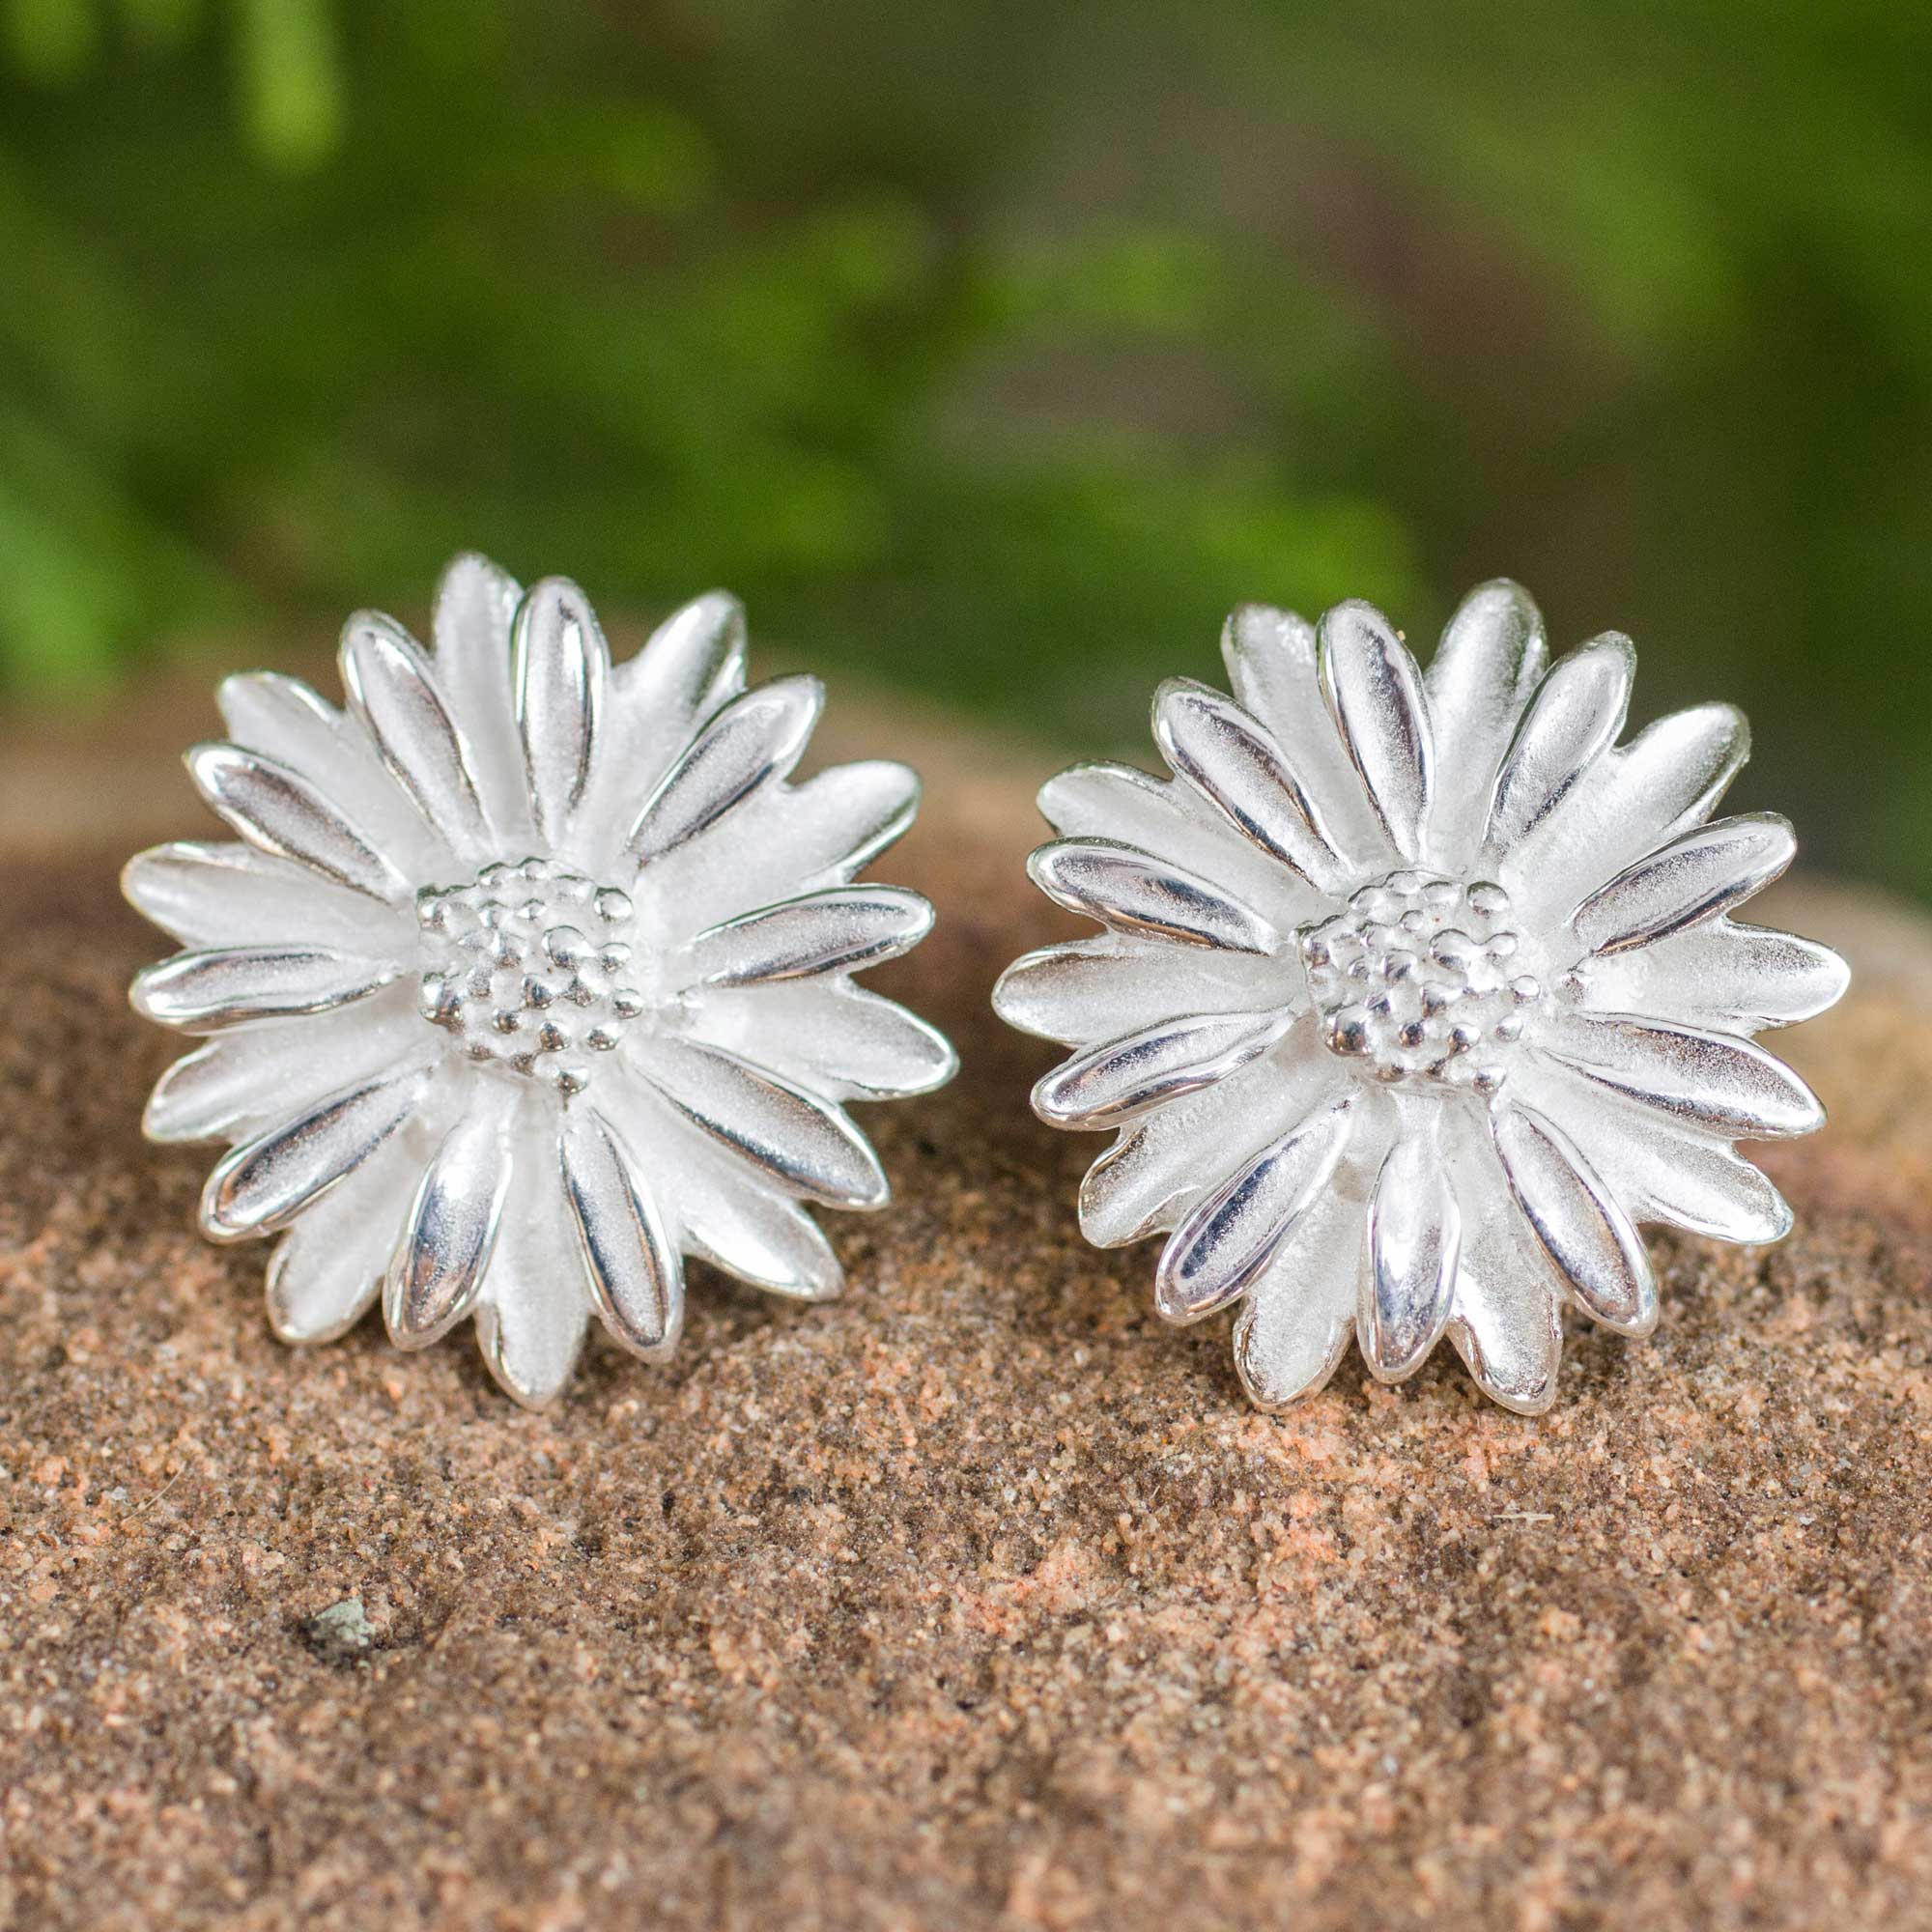 Crafted On Earrings Sterling Silver Flowers Pretty Daisies Novica